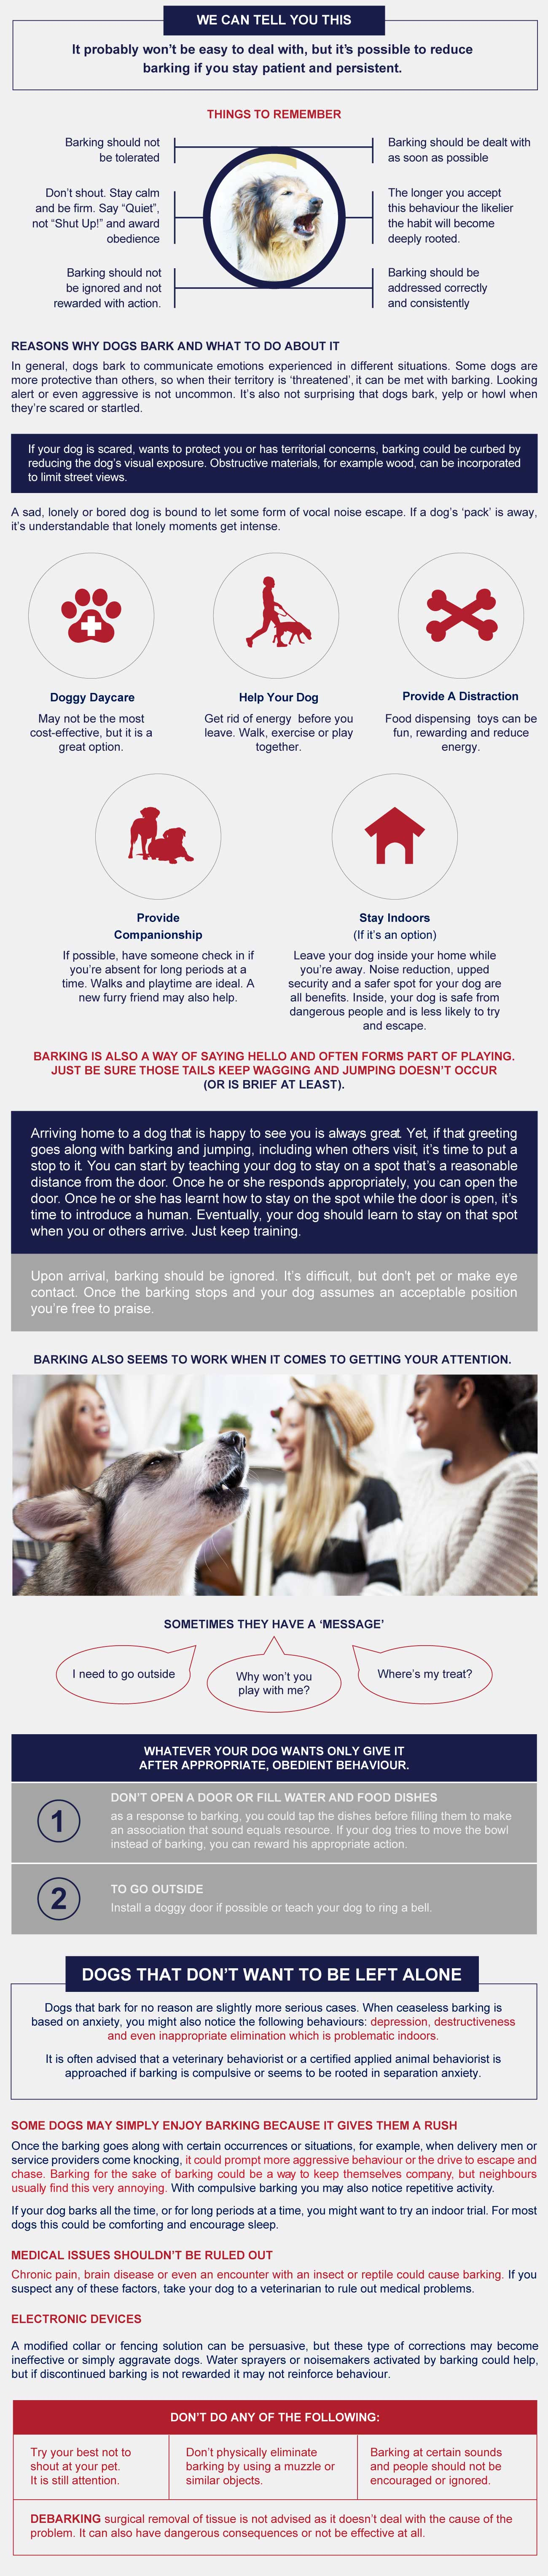 infographic why dogs bark